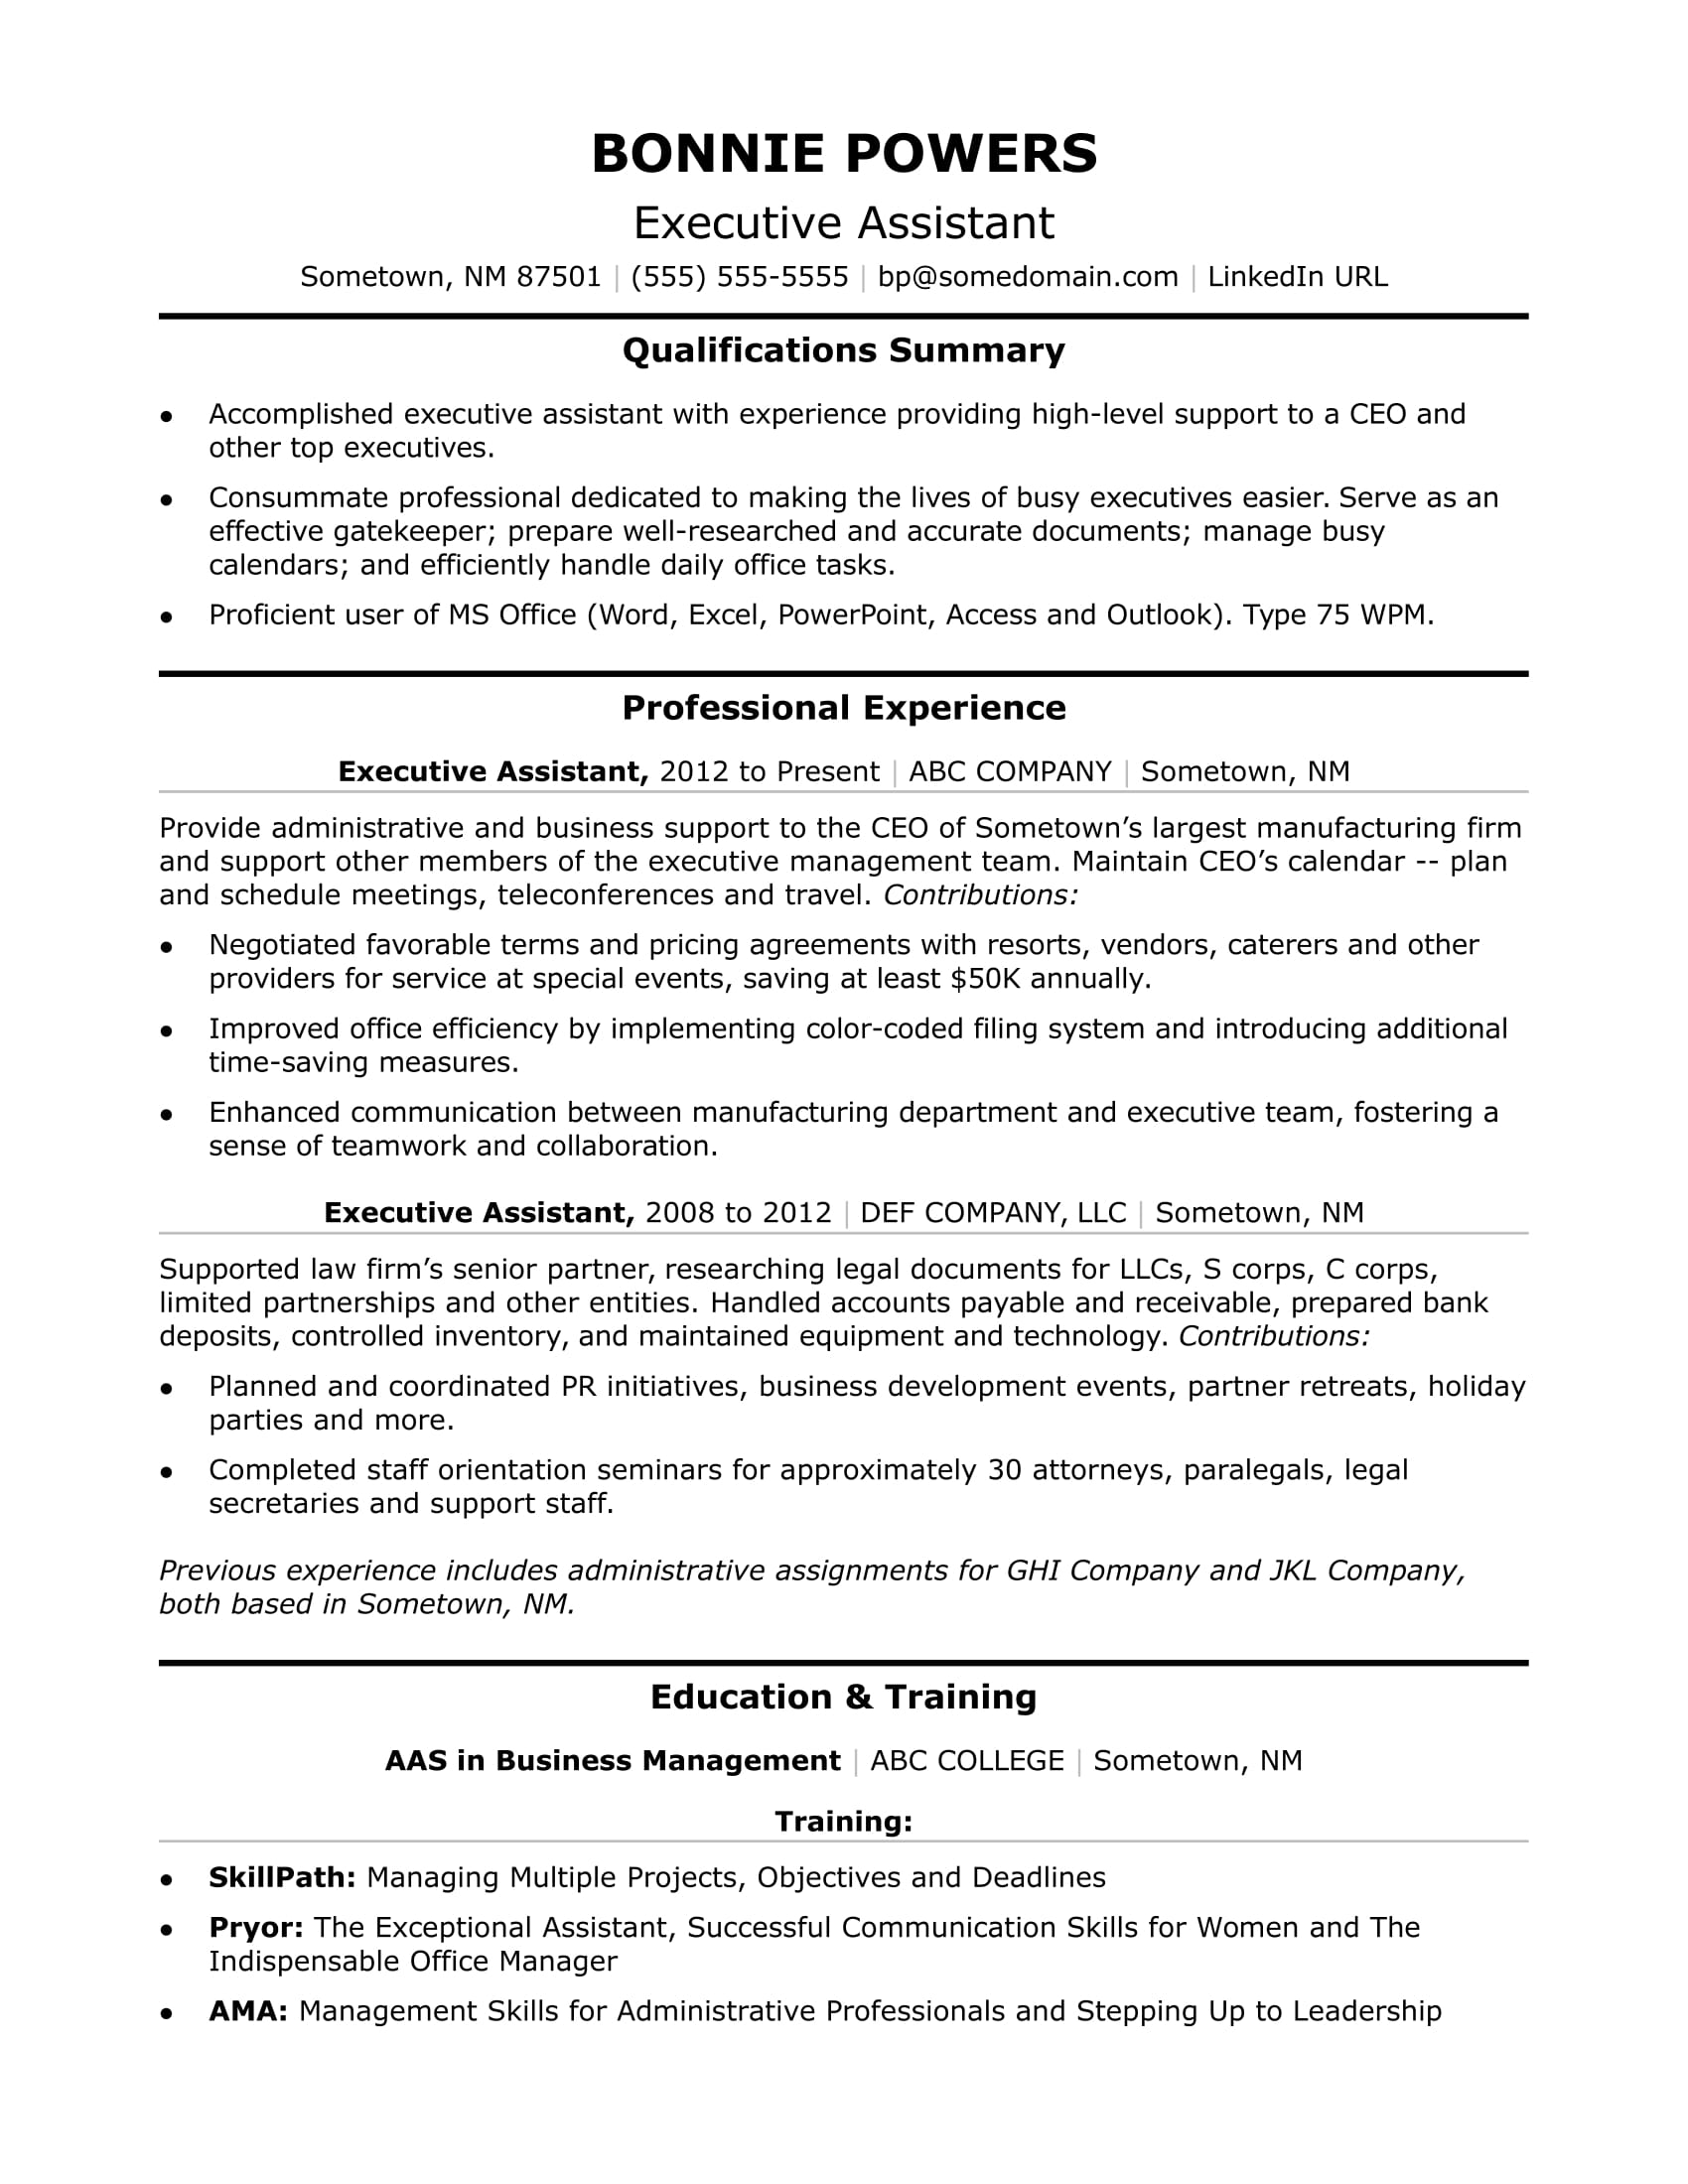 Executive Administrative Assistant Resume Sample  Sample Administrative Assistant Resumes